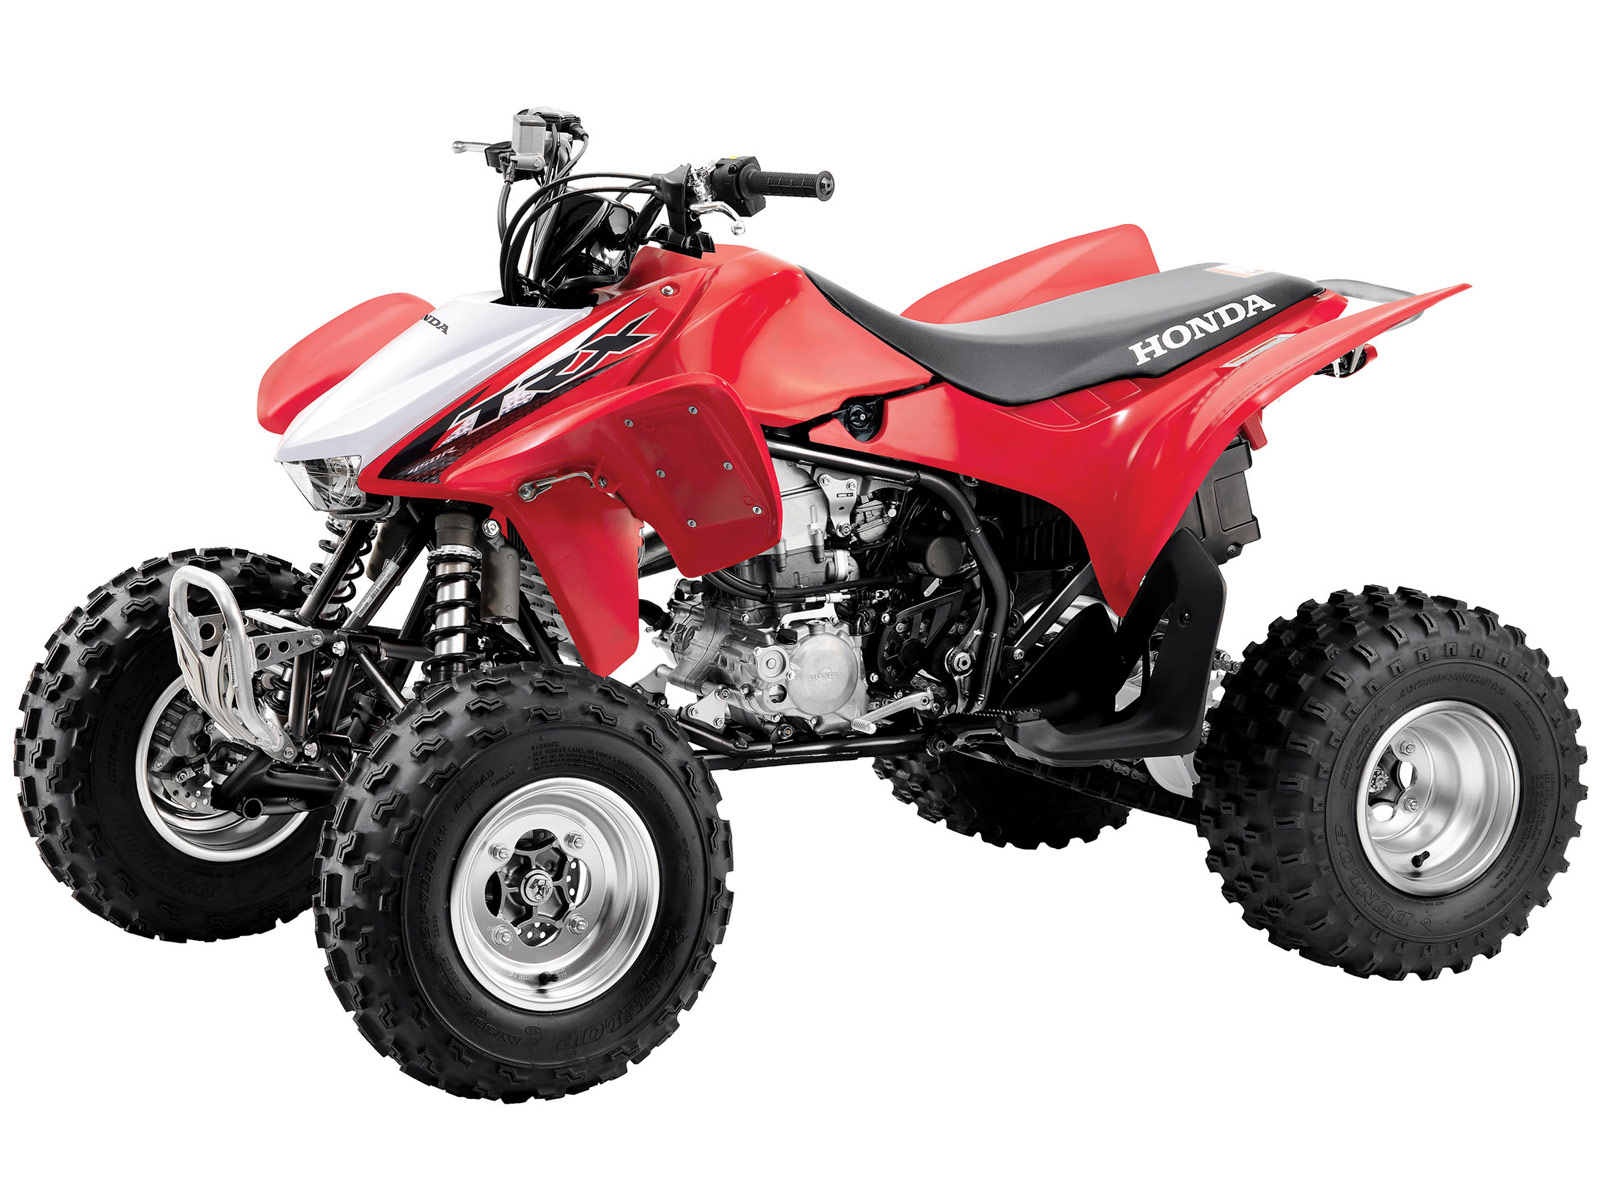 2013 honda trx450r atv pictures insurance information. Black Bedroom Furniture Sets. Home Design Ideas